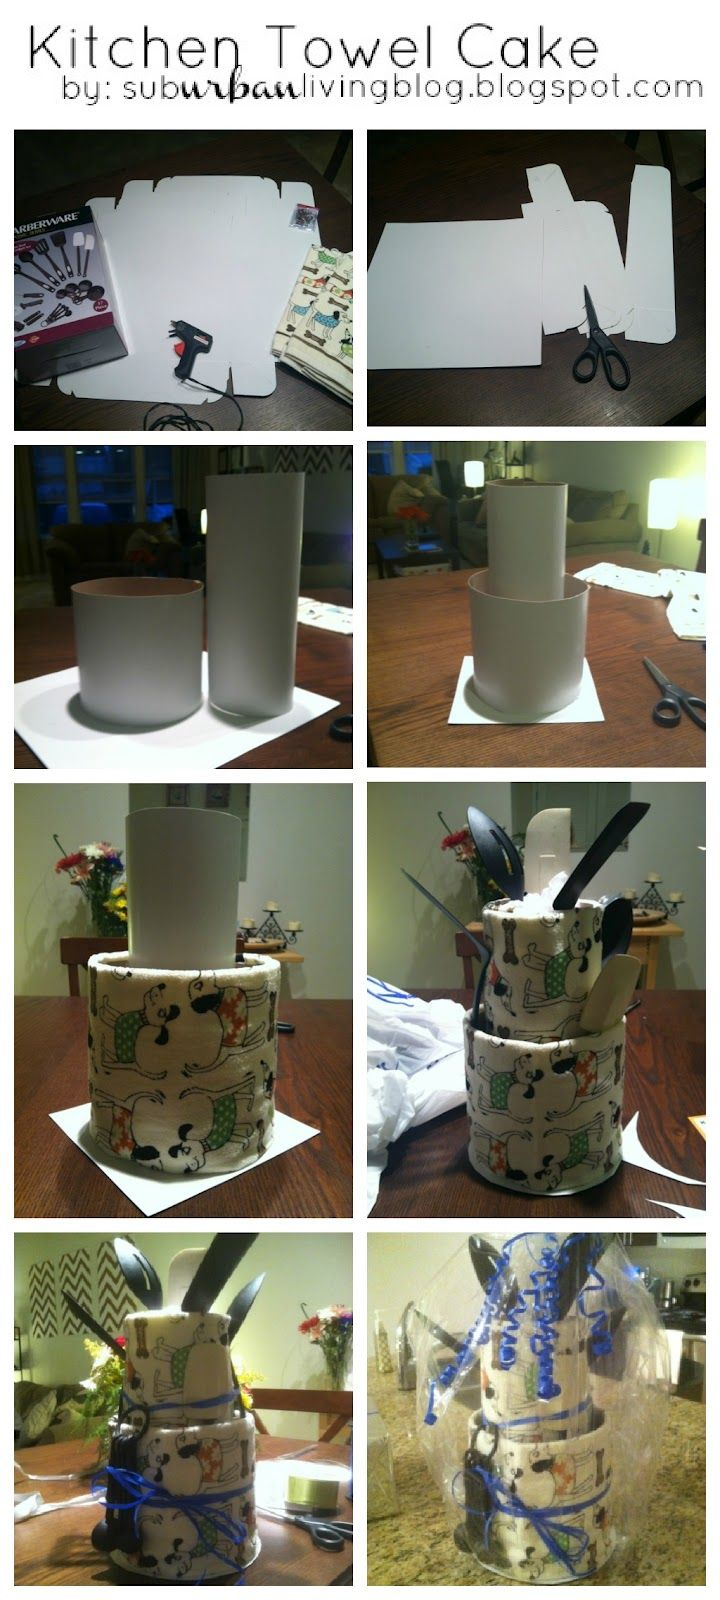 Kitchen Towel Cake - Bridal Shower - Gift   subURBAN living blog